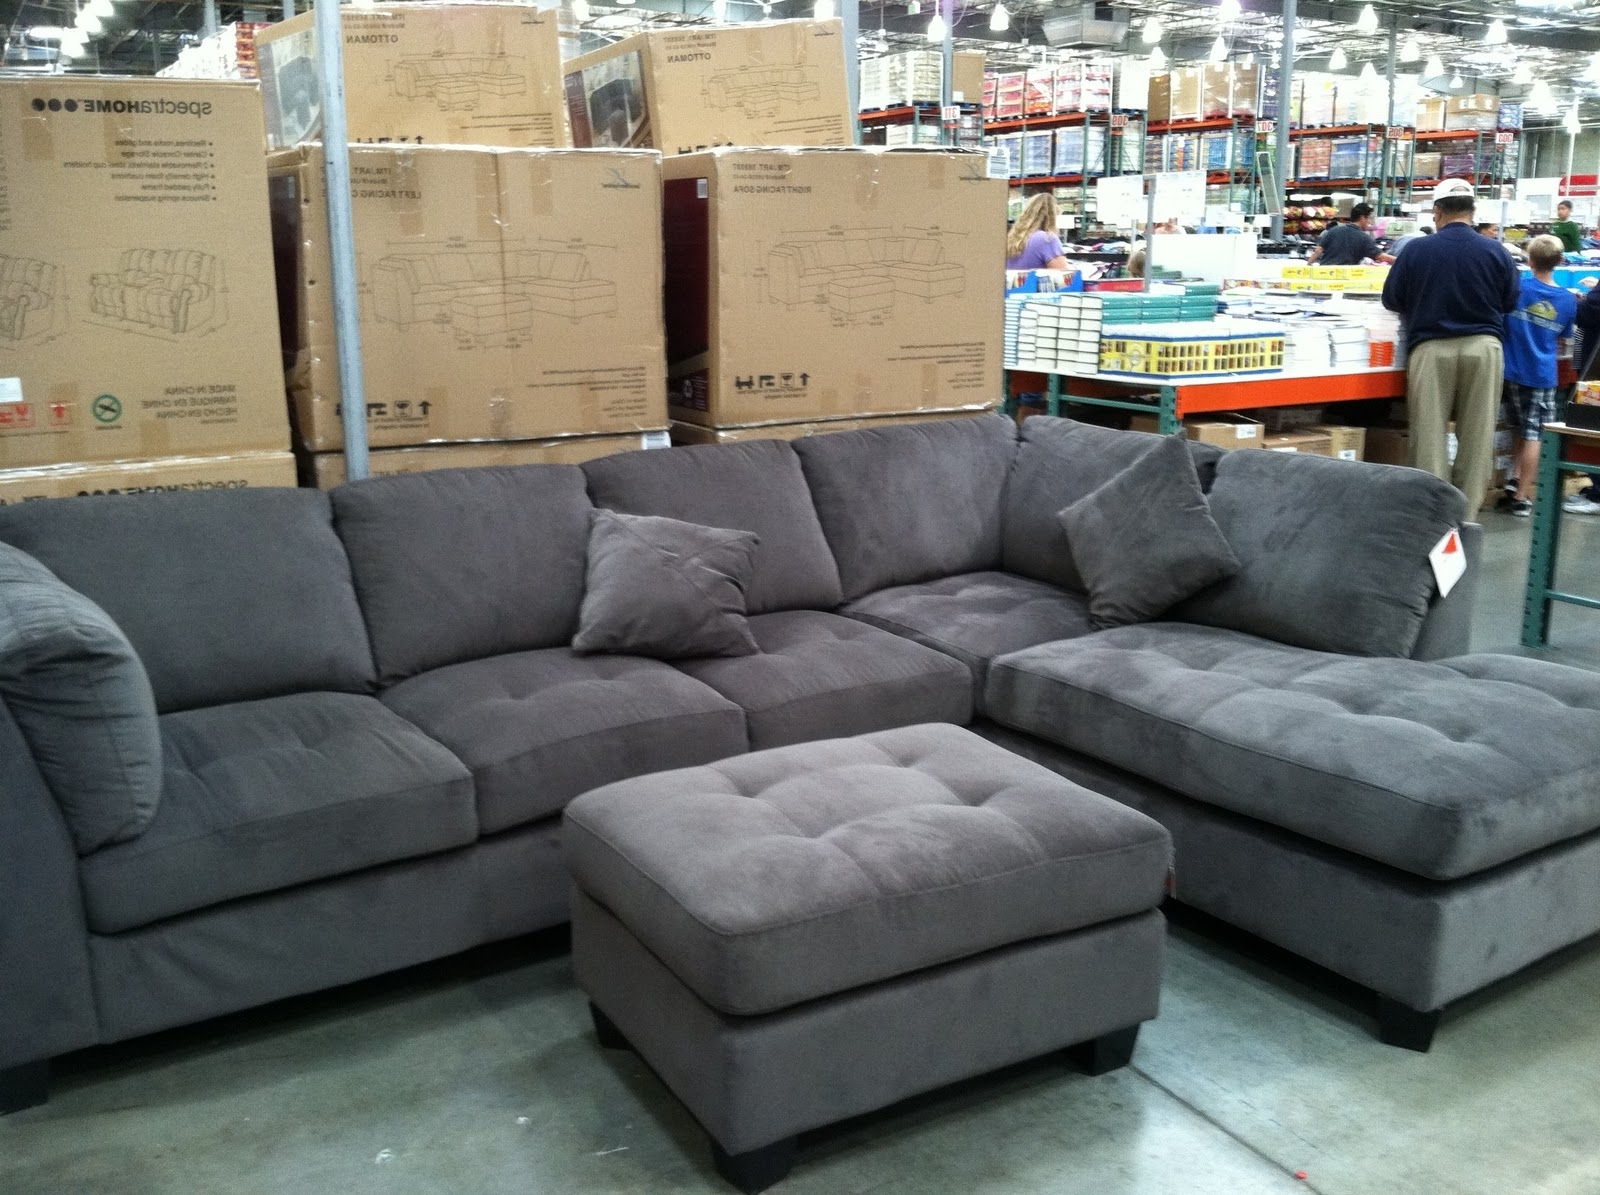 Preferred Epic Gray Sectional Sofa Costco 21 For Sofa Table Ideas With Gray Regarding Sectional Sofas At Costco (View 11 of 15)